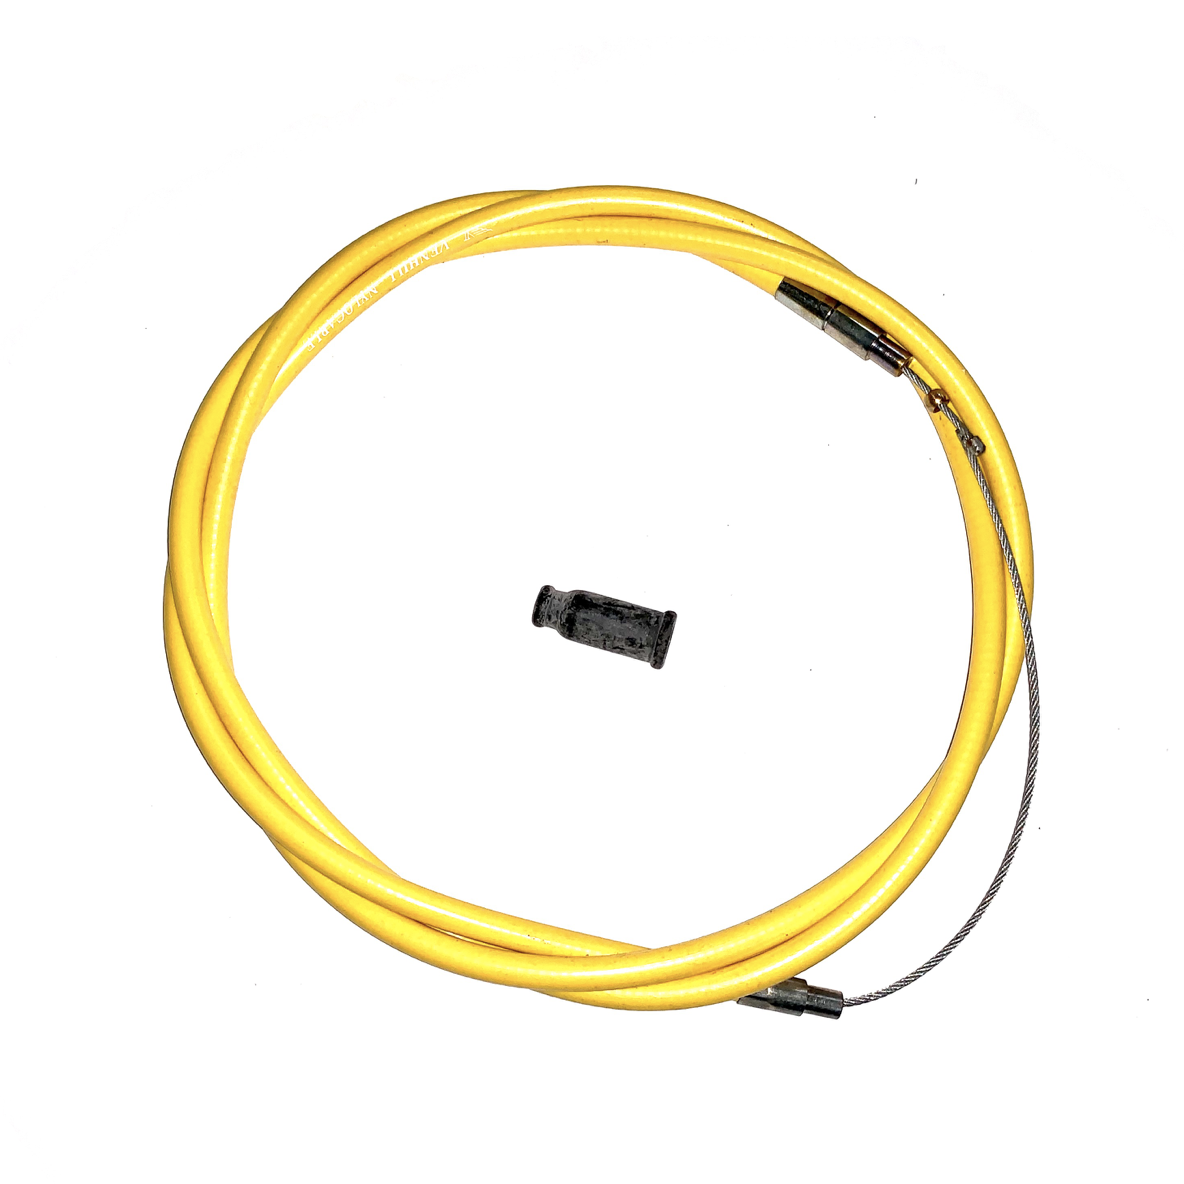 VENHILL UNIVERSAL THROTTLE CABLE KIT 1.4M - STANDARD - YELLOW